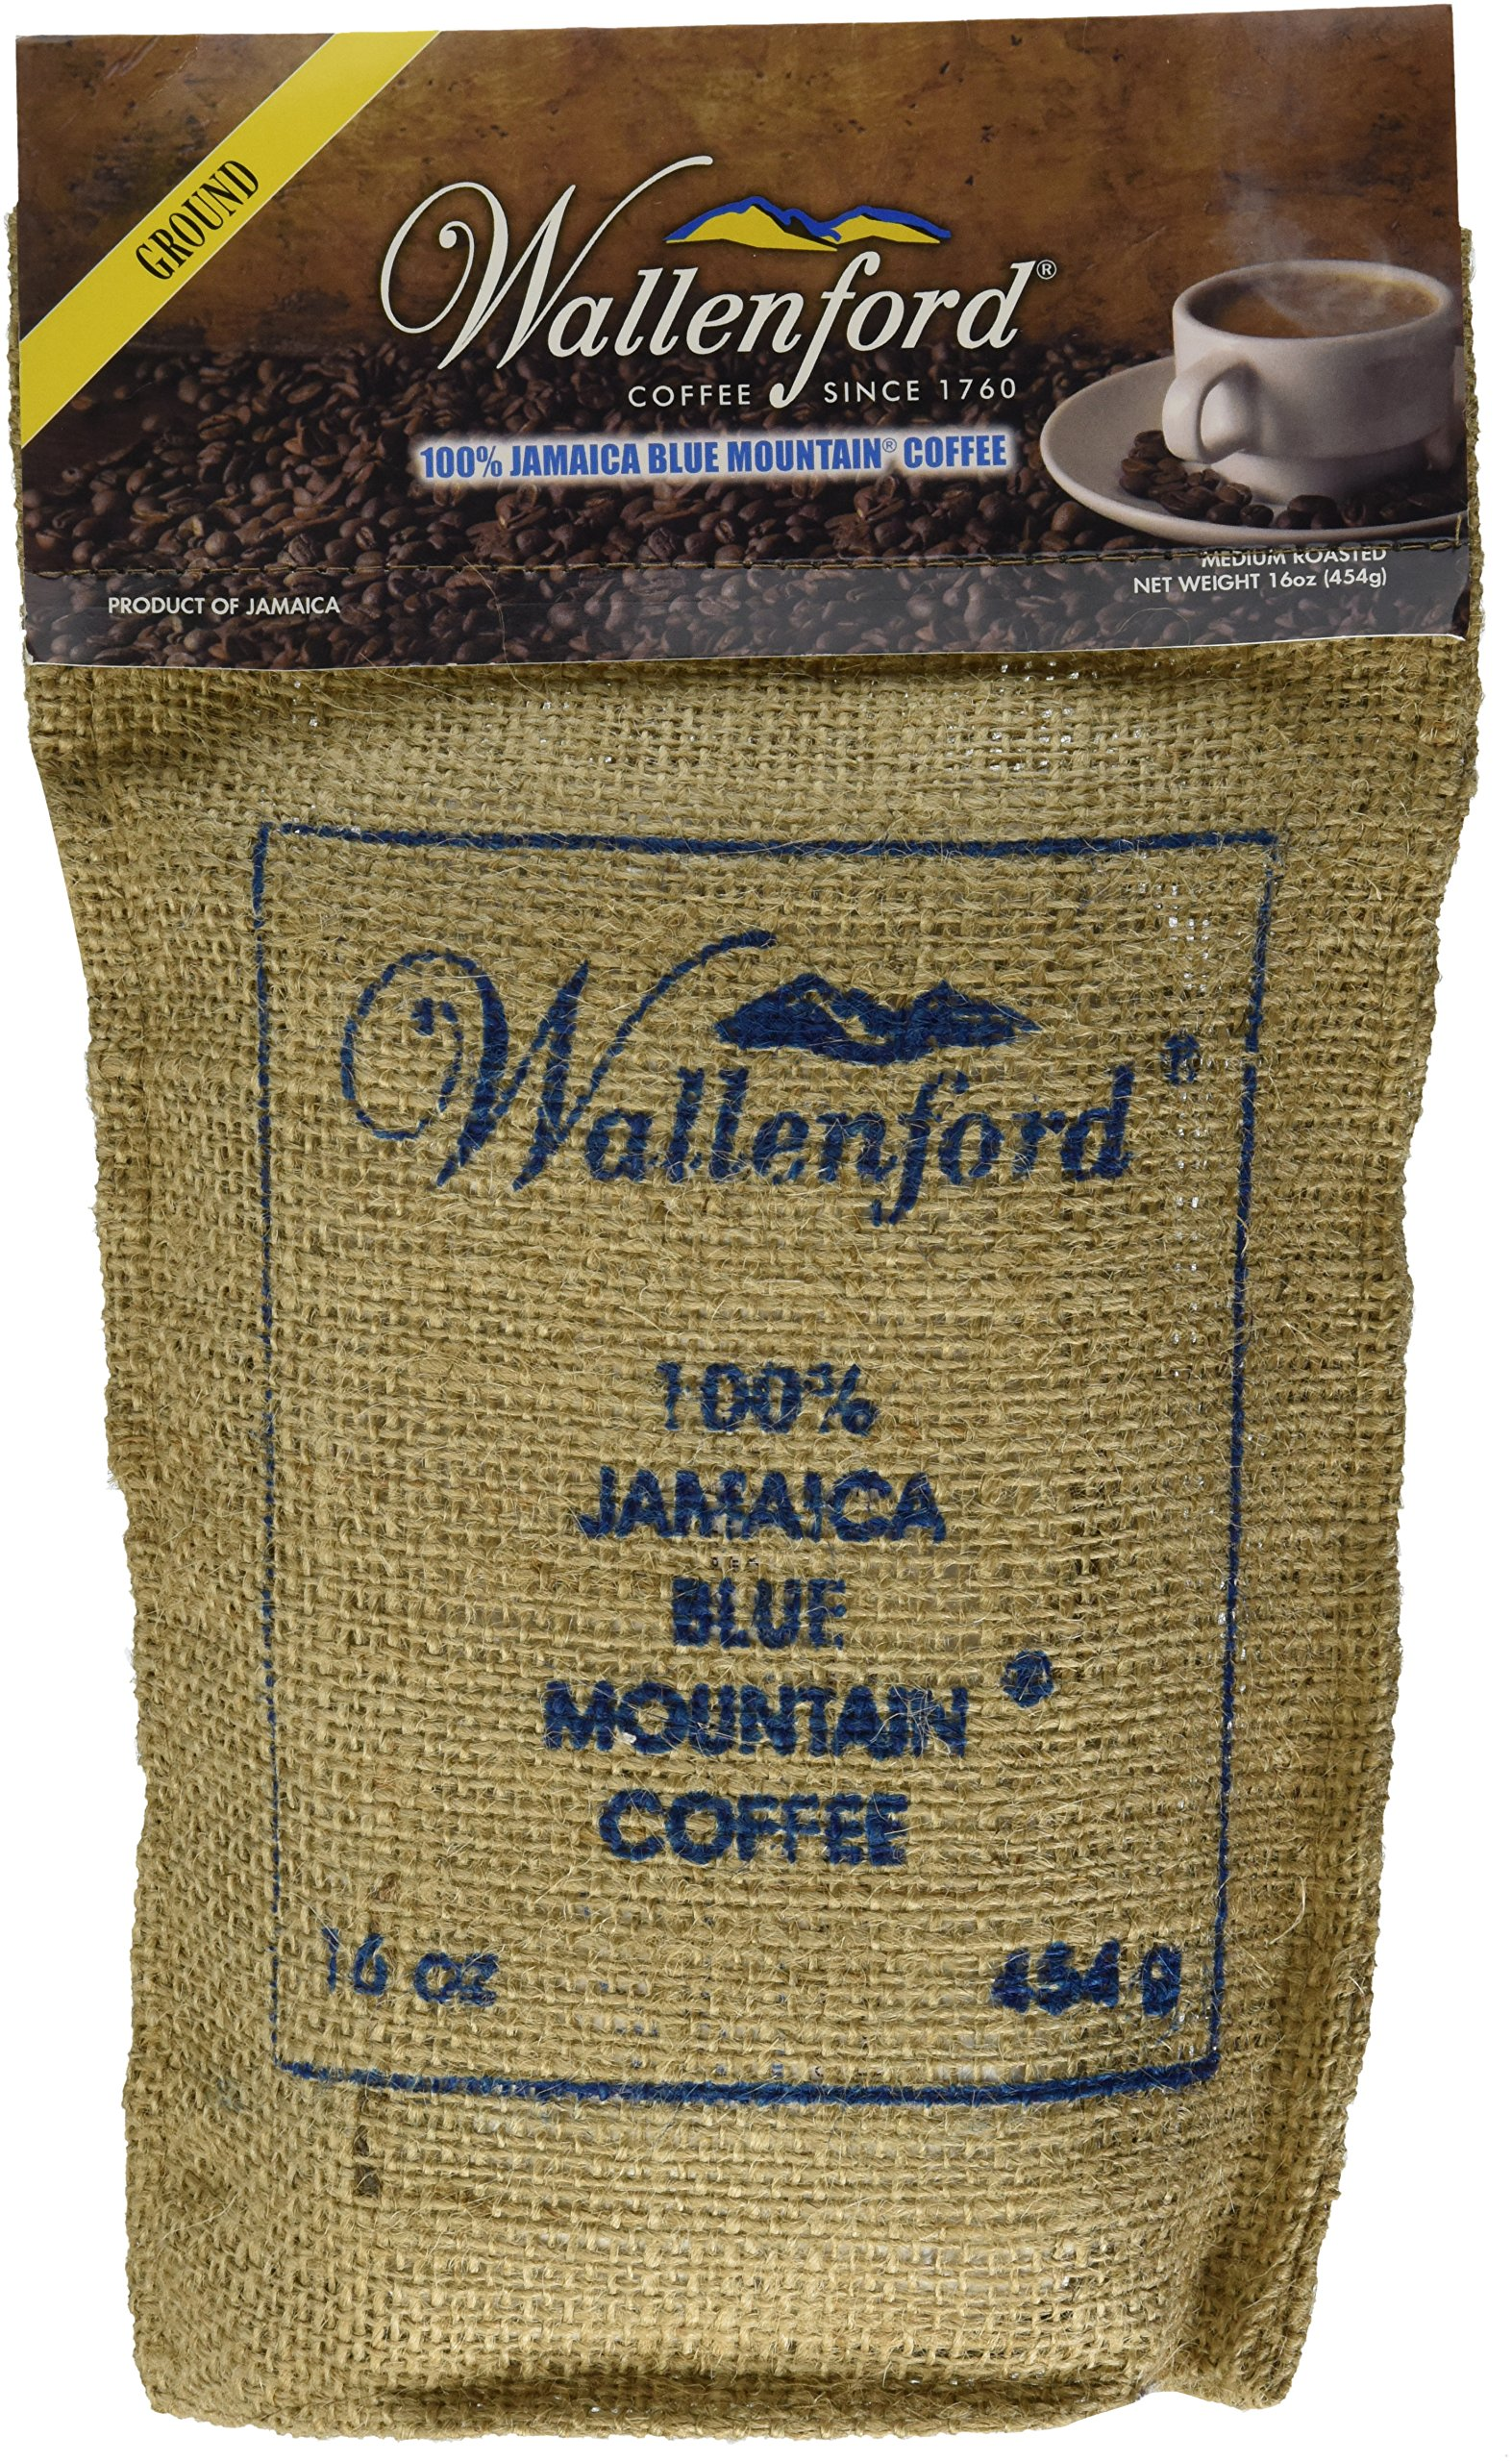 16oz (1lb) Roasted Whole Bean 100% Jamaica Blue Mountain Coffee by Wallenford